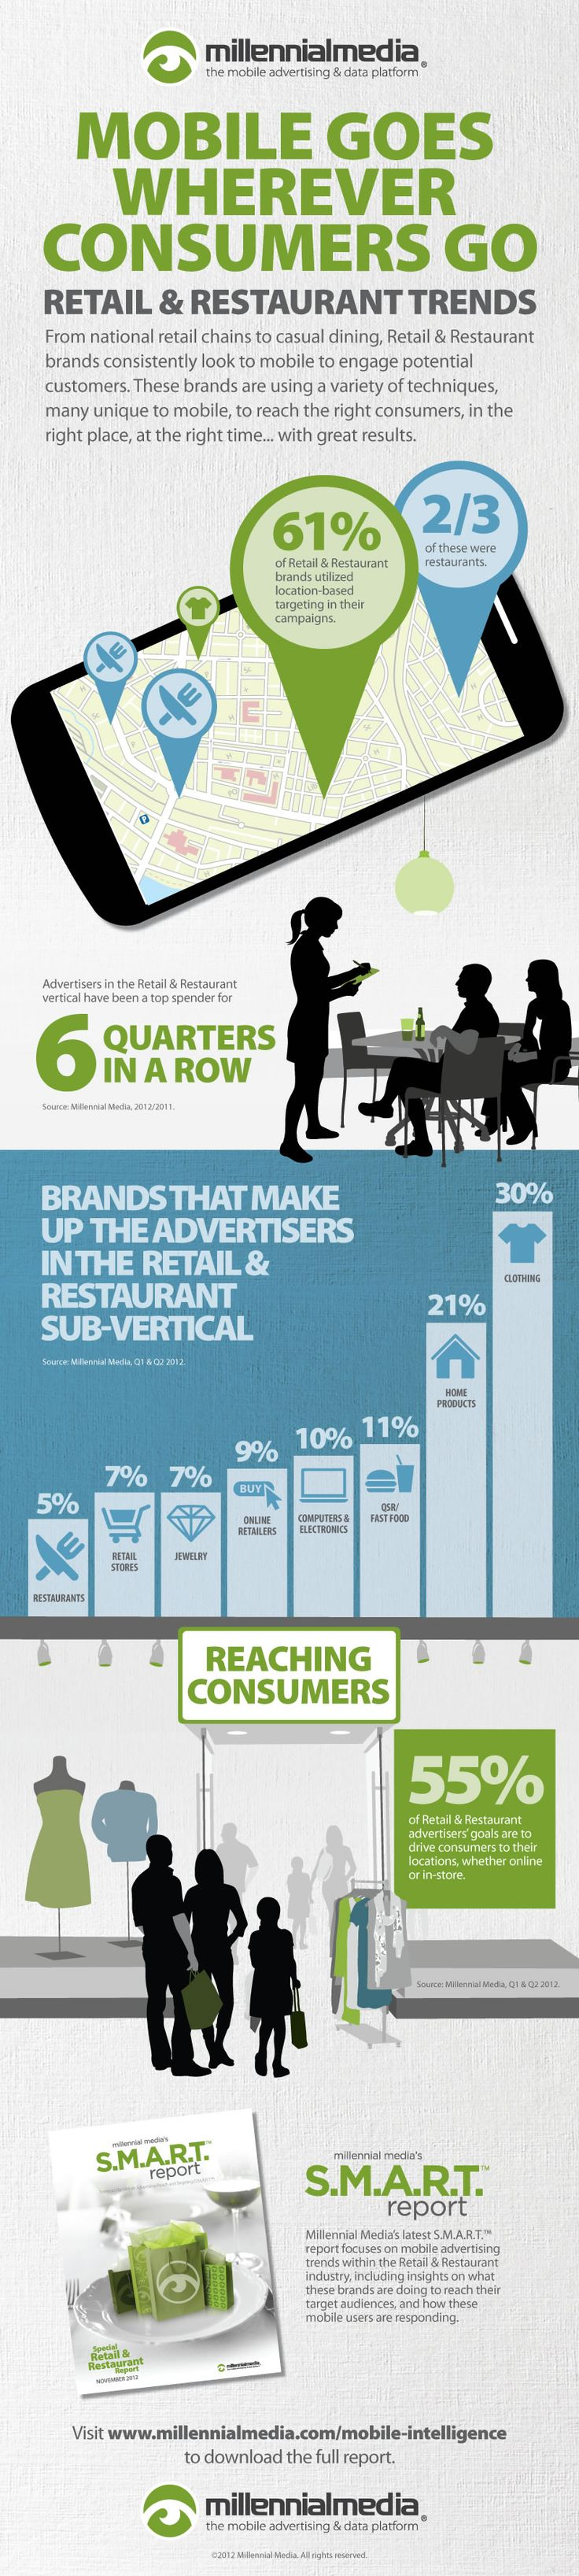 #Mobile Goes Wherever #Consumers Go